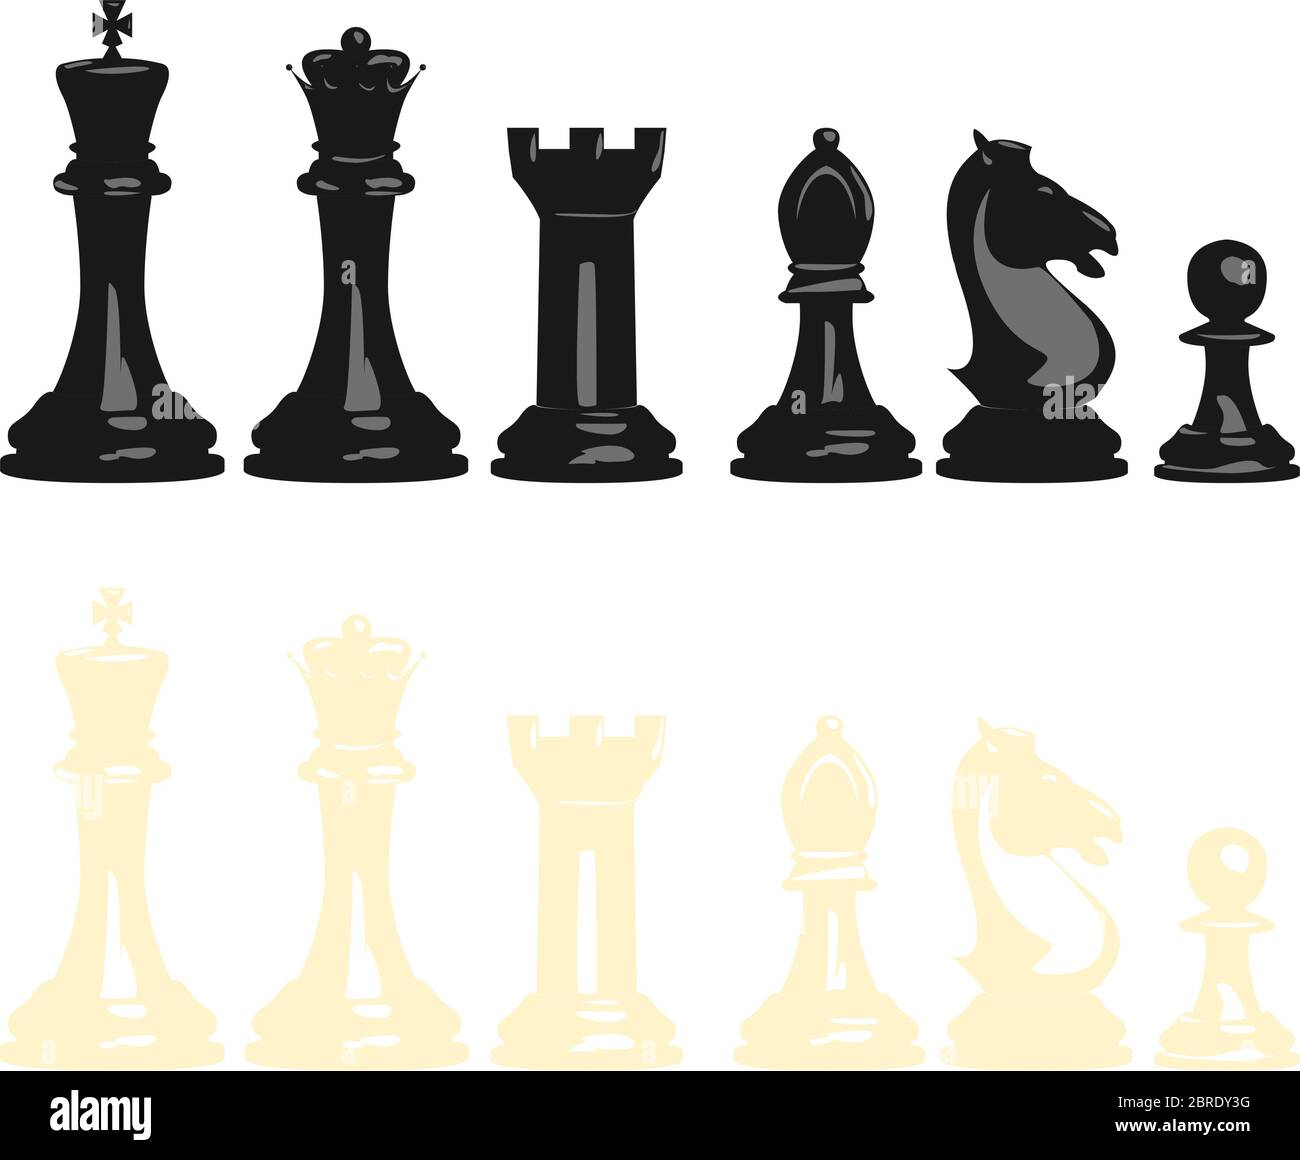 Vector illustration set of chess pieces, blacks and whites, contains all pieces: king, queen, tower, bishop, knight and pawn. Stock Vector